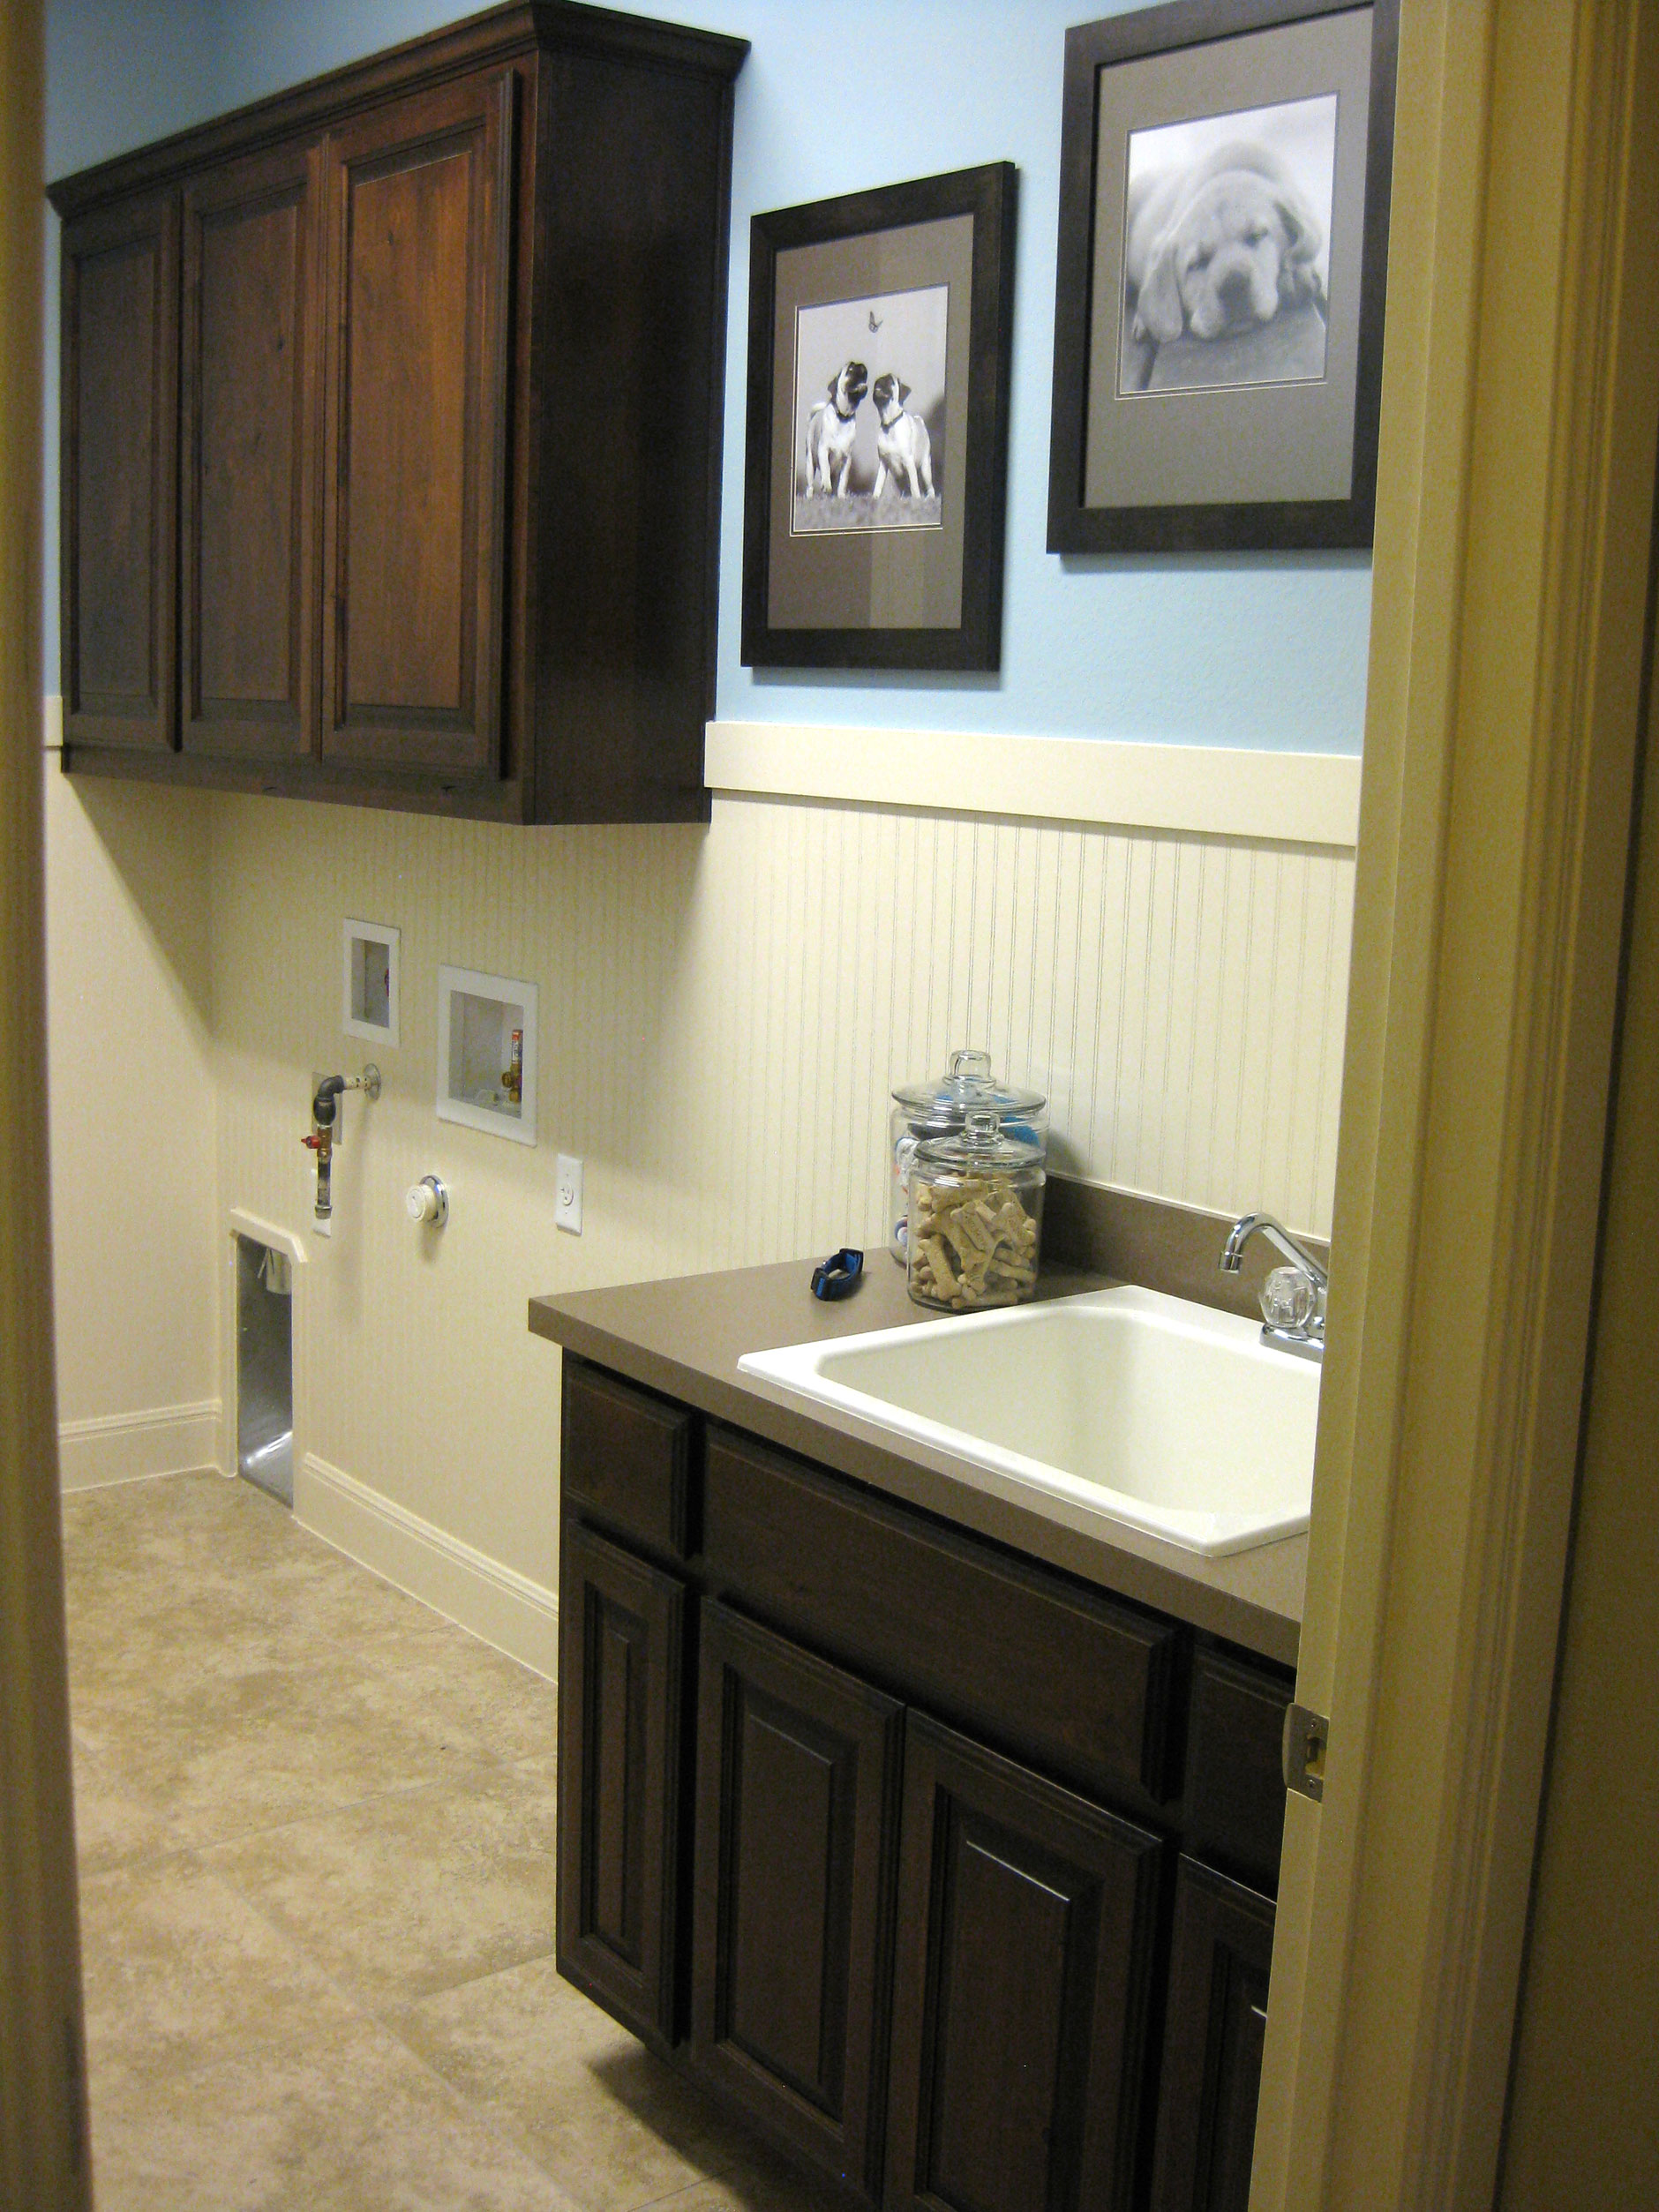 Laundry room cabinets with cope and stick cabinet doors by TaylorCraft Cabinet Door Company